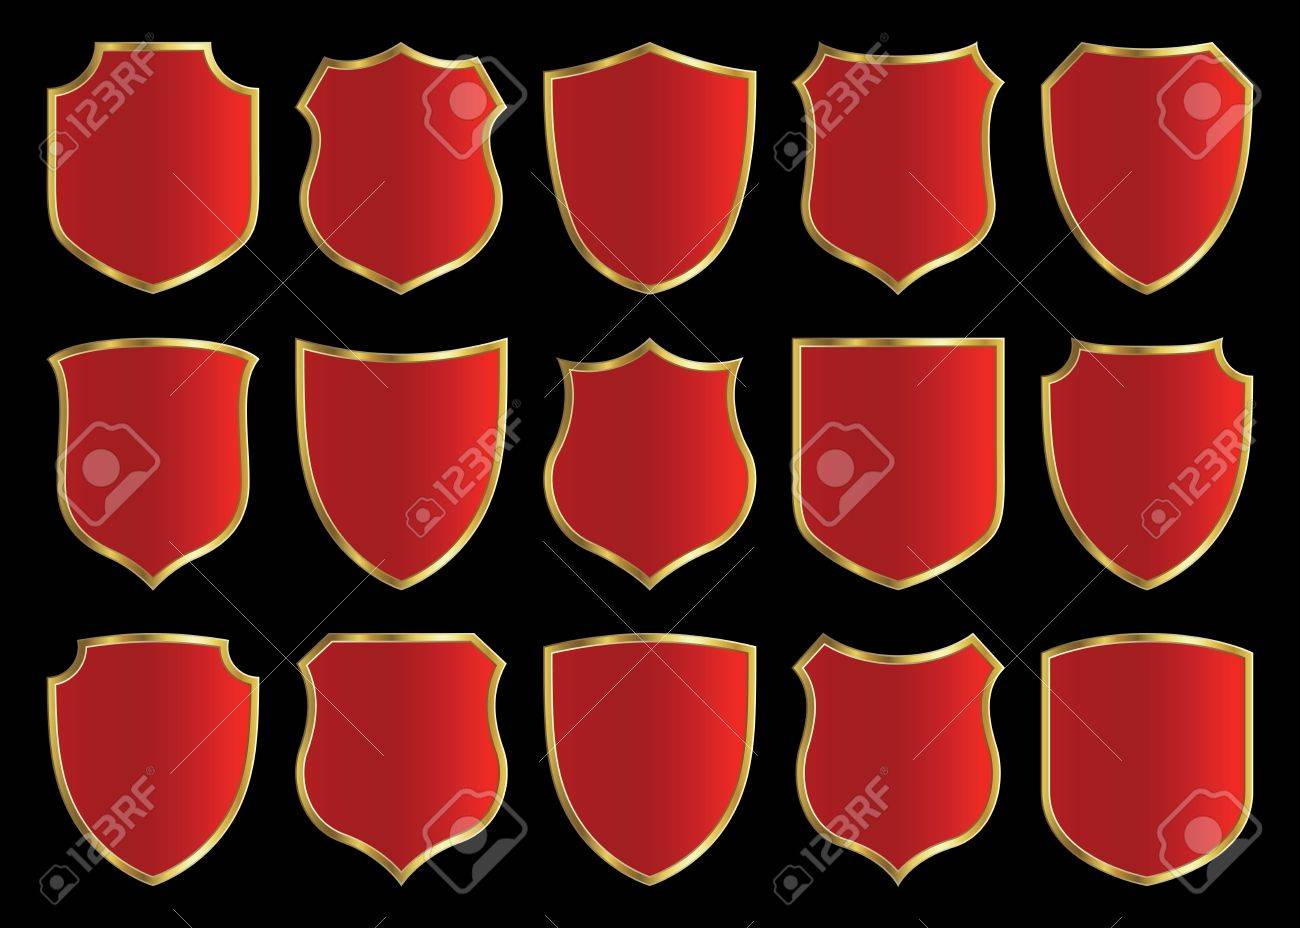 red shield with gloden border; design set with various shapes Stock Photo - 2919643